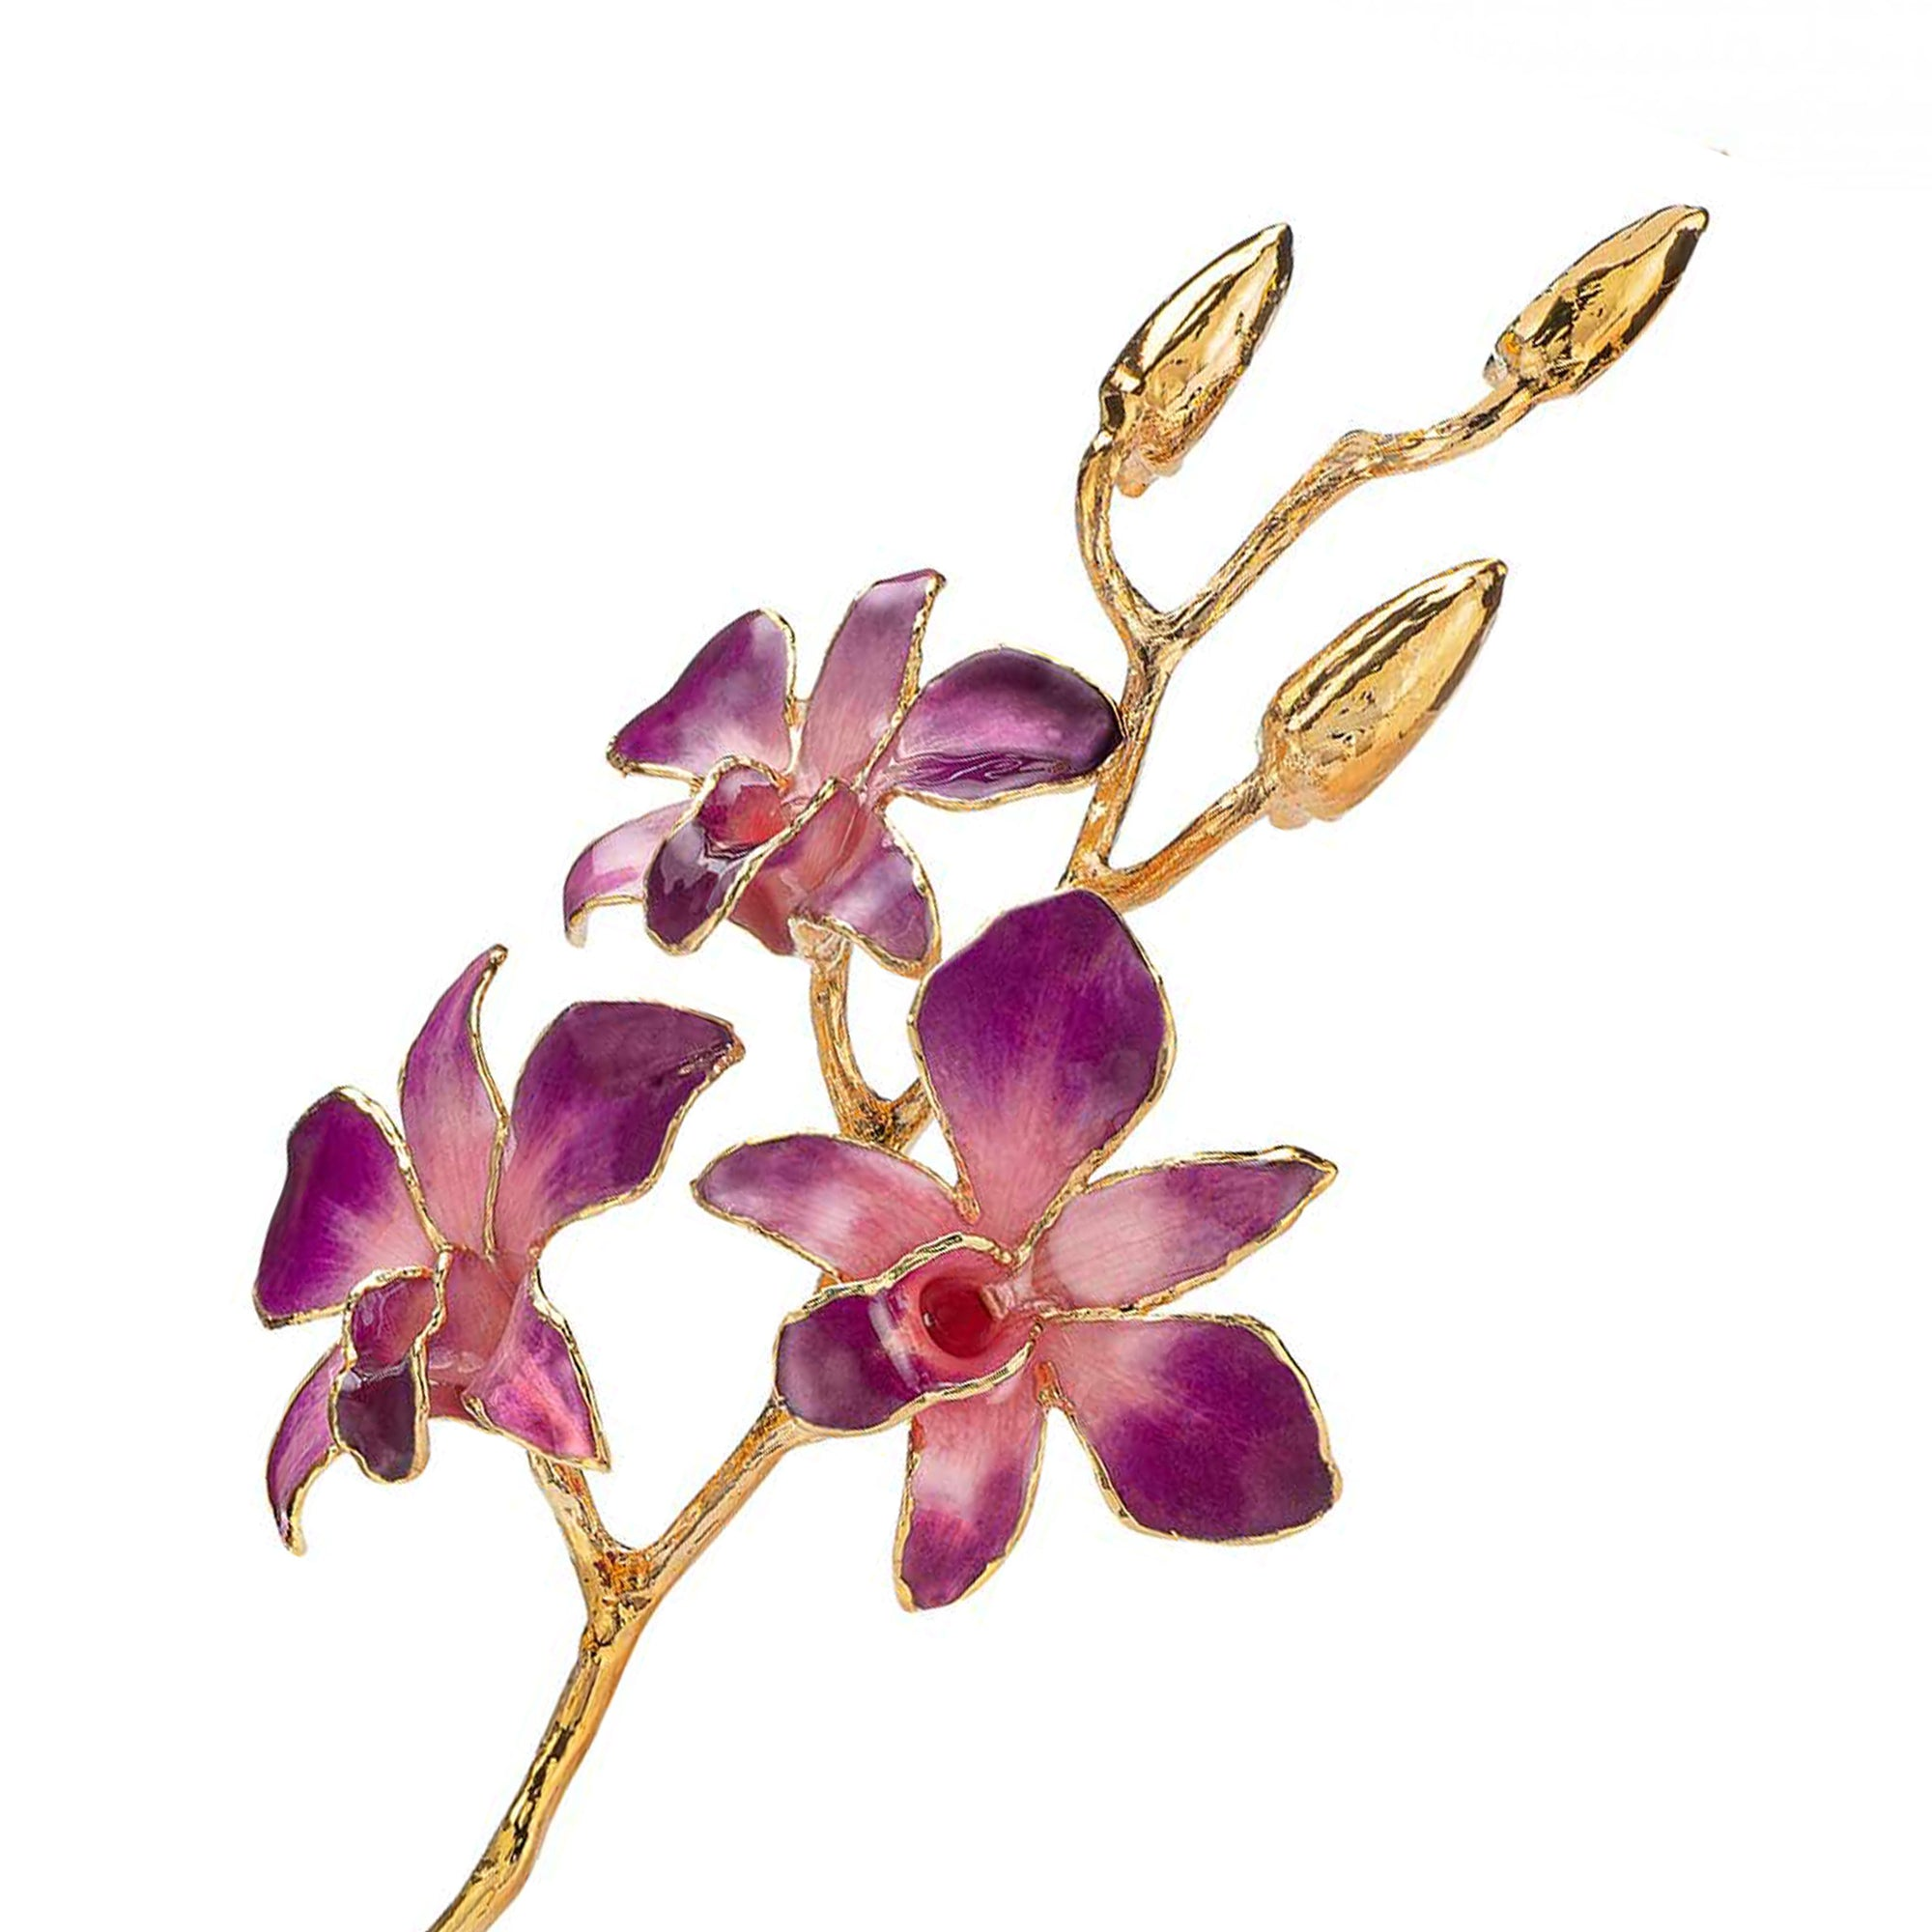 24K Gold Dipped Orchid in Lilac Pink  view of gold stem and flowers